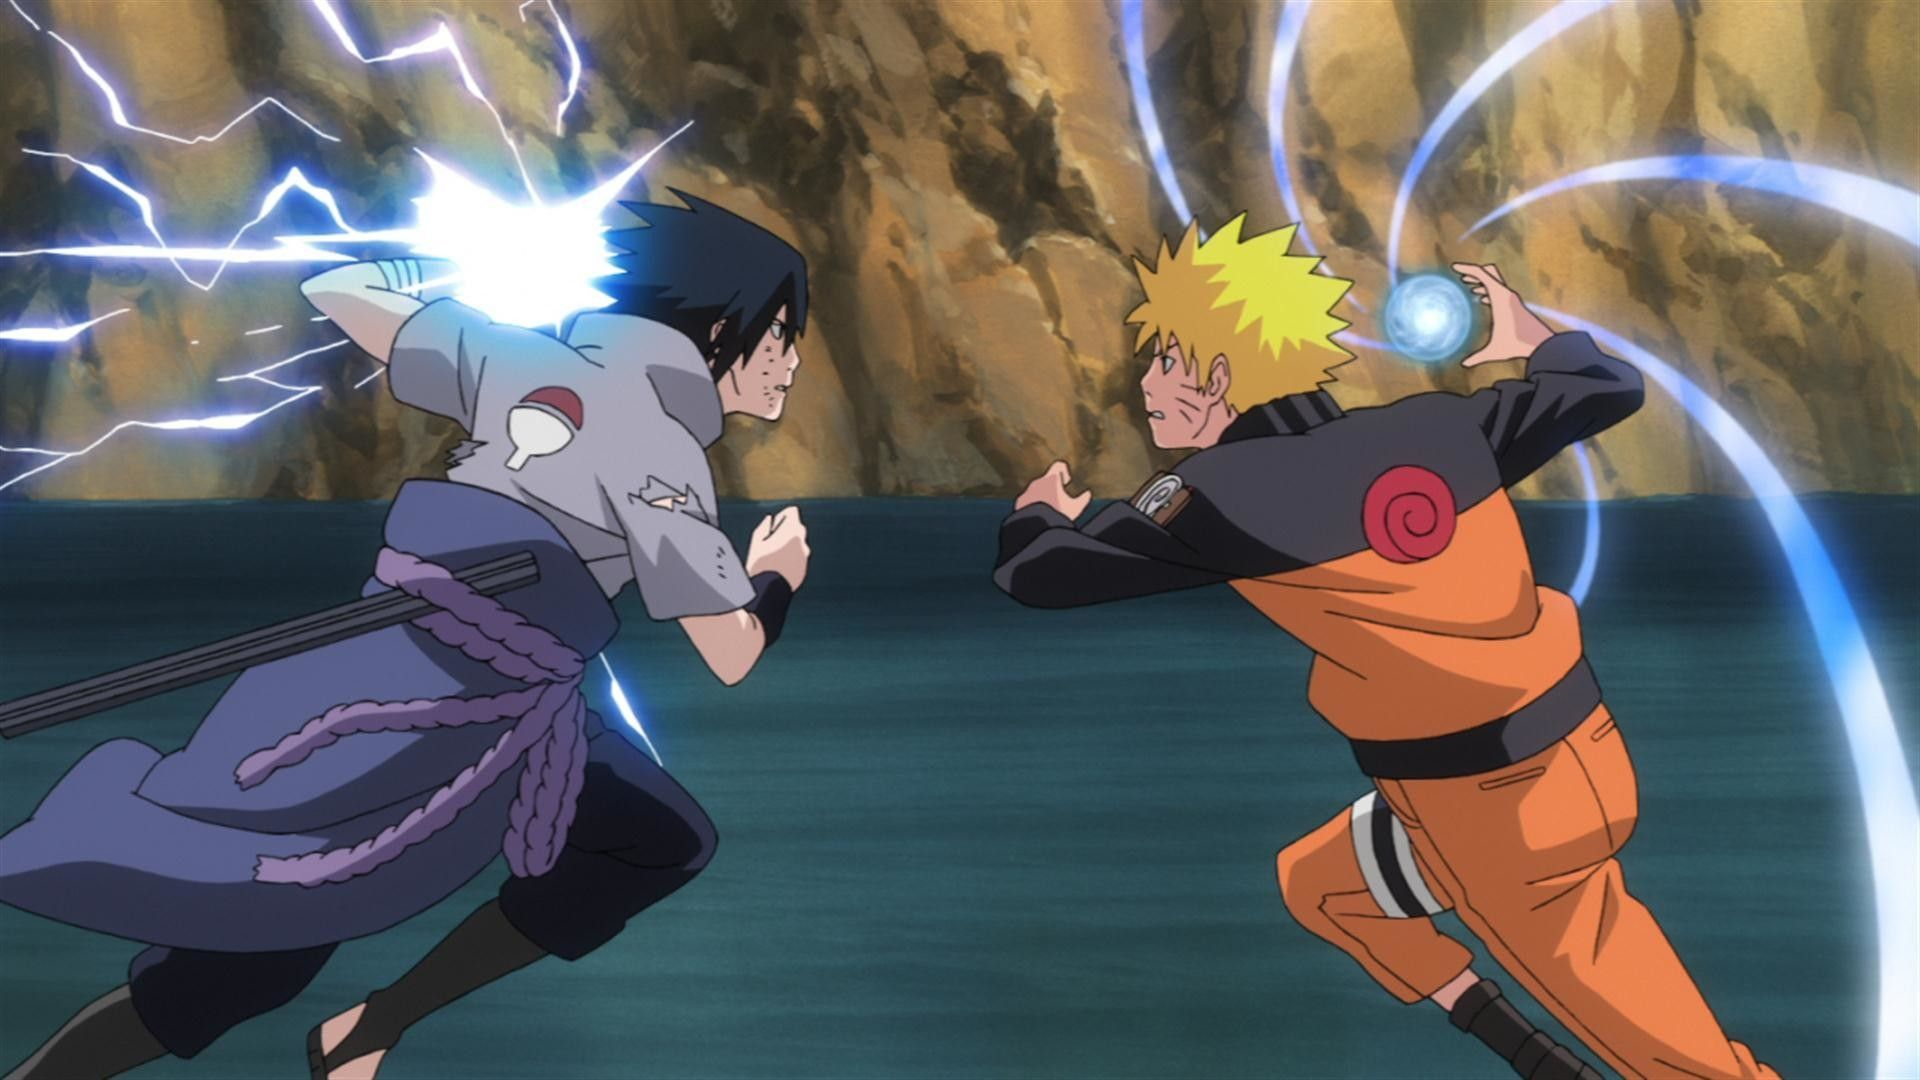 Naruto Vs Sasuke Wallpapers Top Free Naruto Vs Sasuke